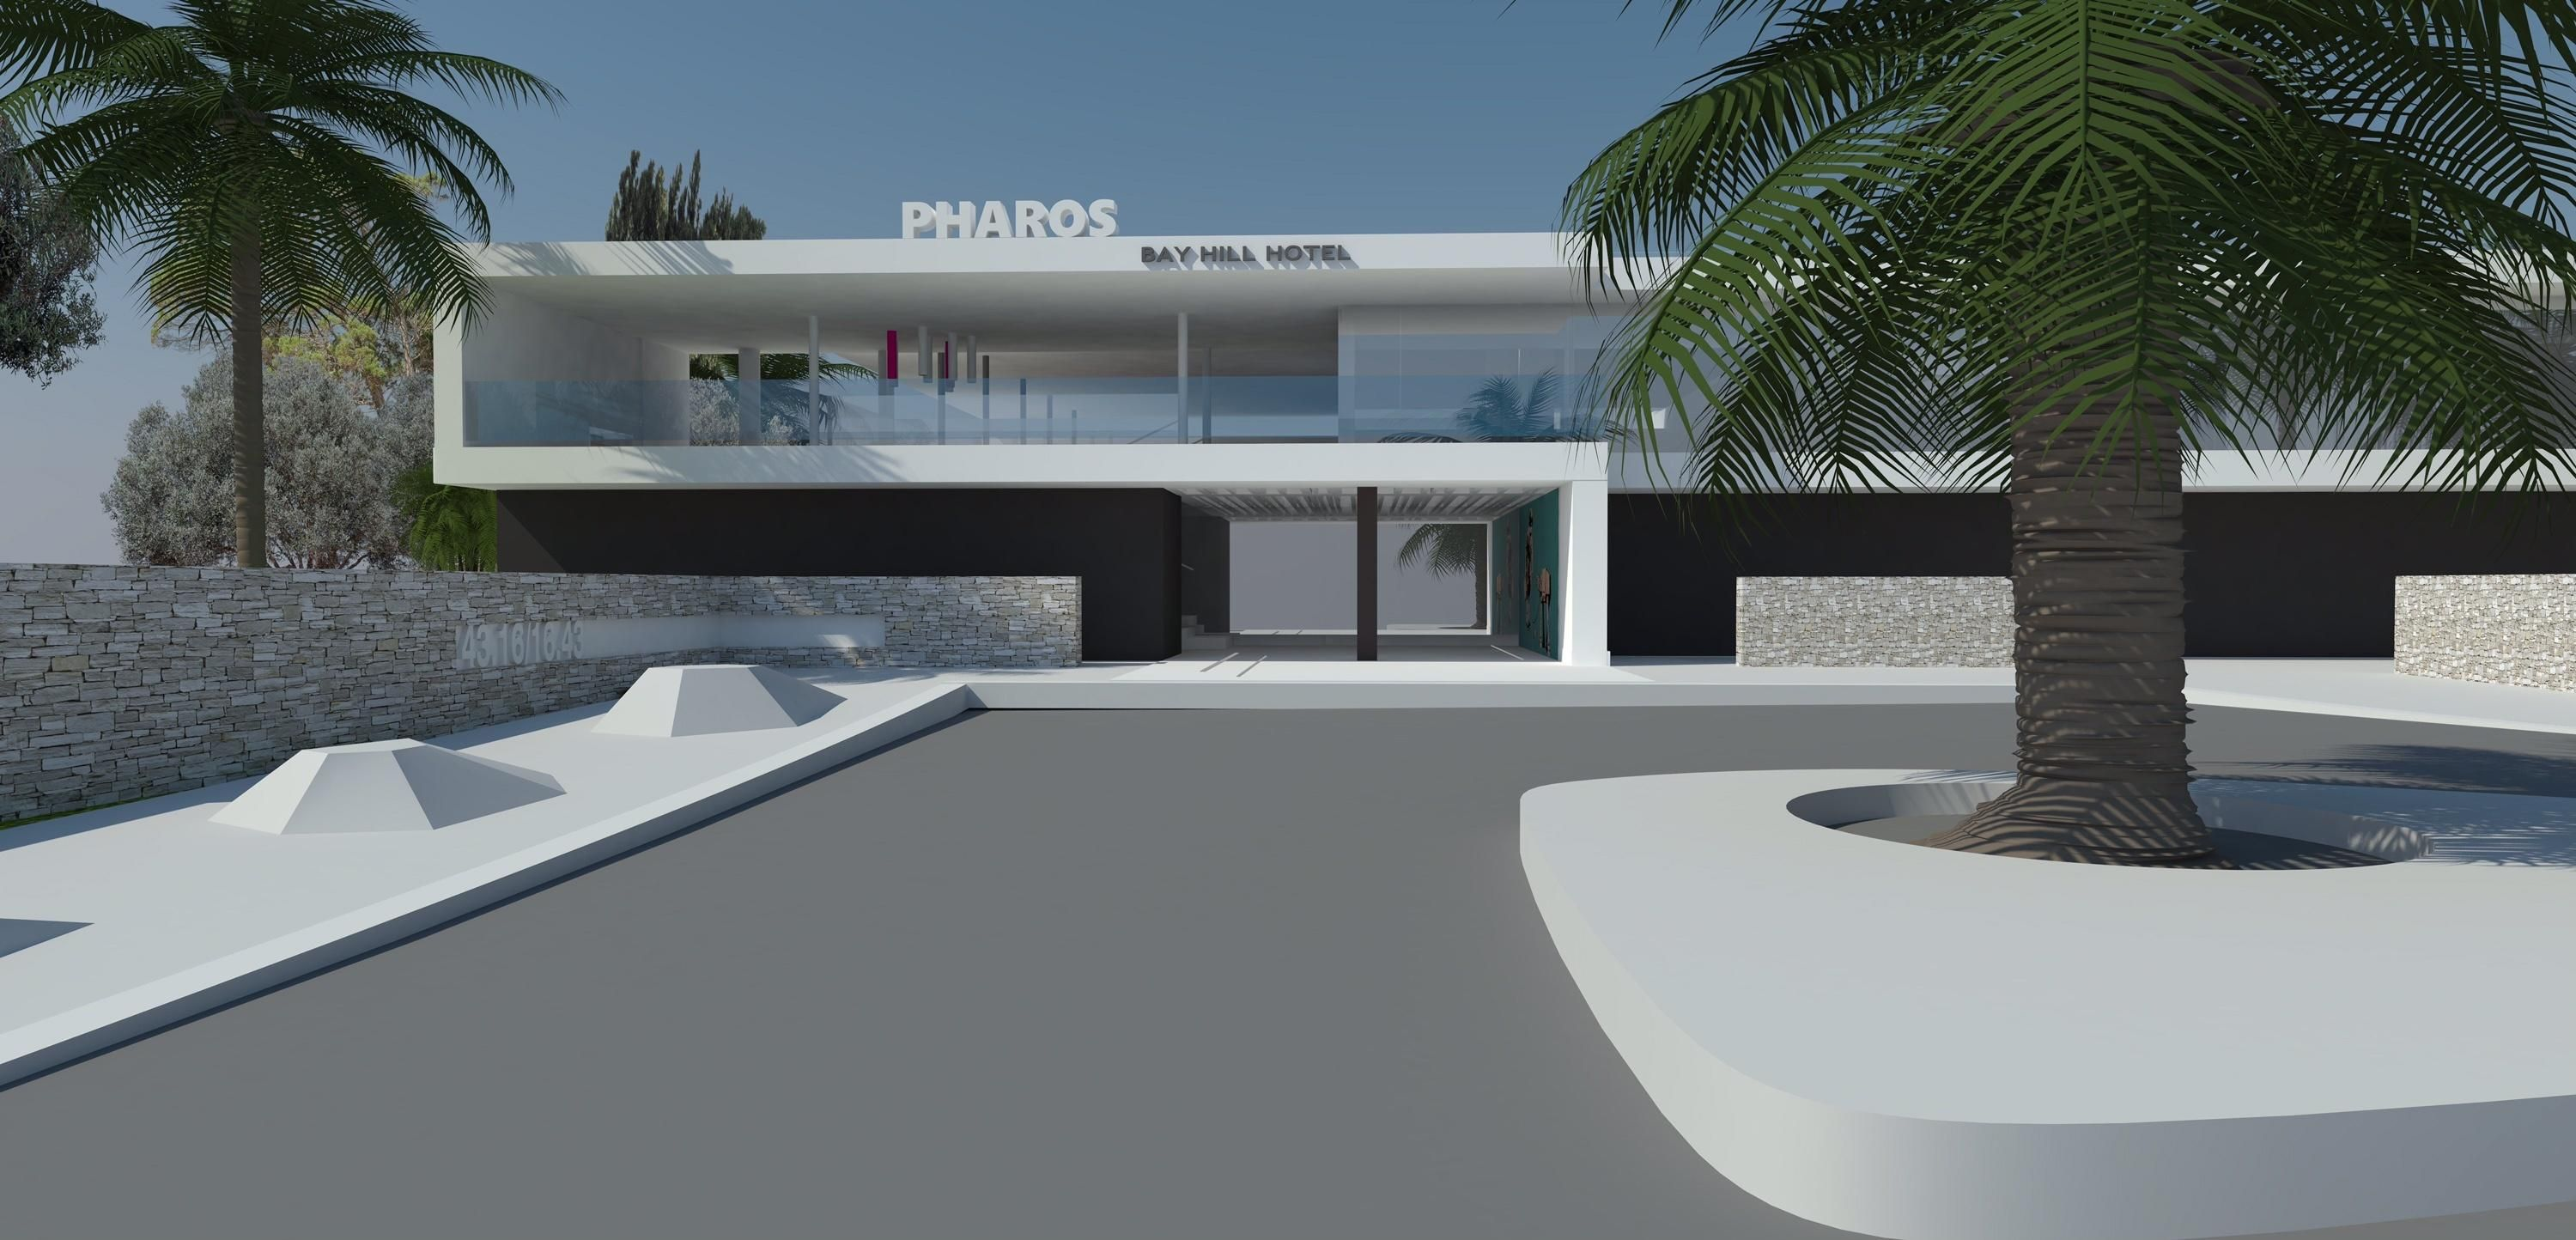 Suncani hvar announces opening of millennial pharos hvar bayhill with their fortunes improving and on the back of a record season in 2015 suncani hvar has decided to tap into the new tourism trend and invest in a 7 malvernweather Images